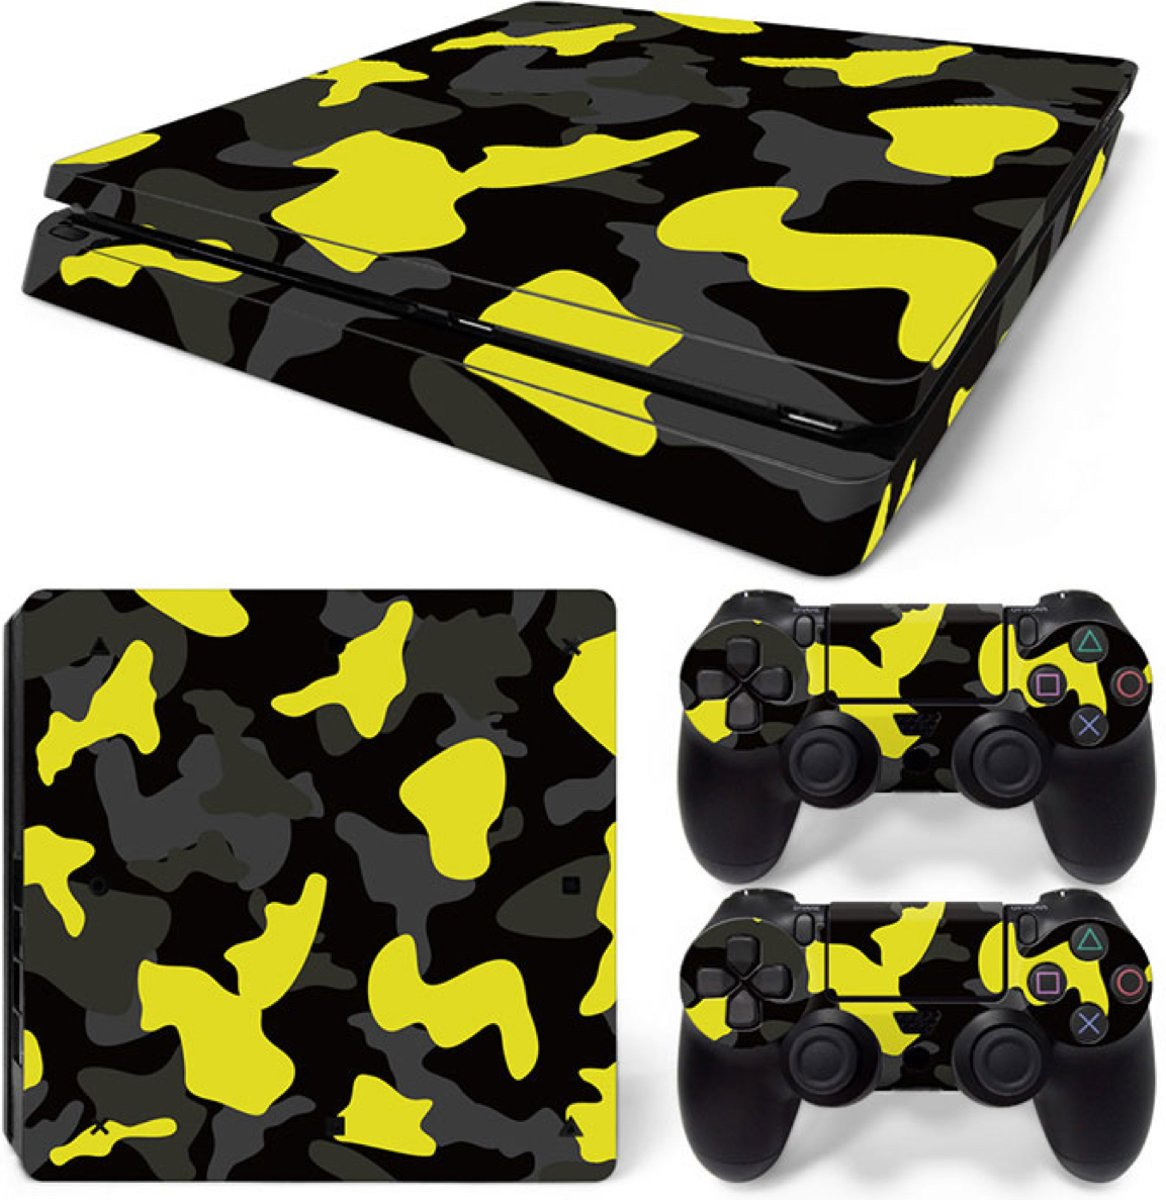 Army Camo / Geel Zwart - PS4 Slim Console Skins PlayStation Stickers